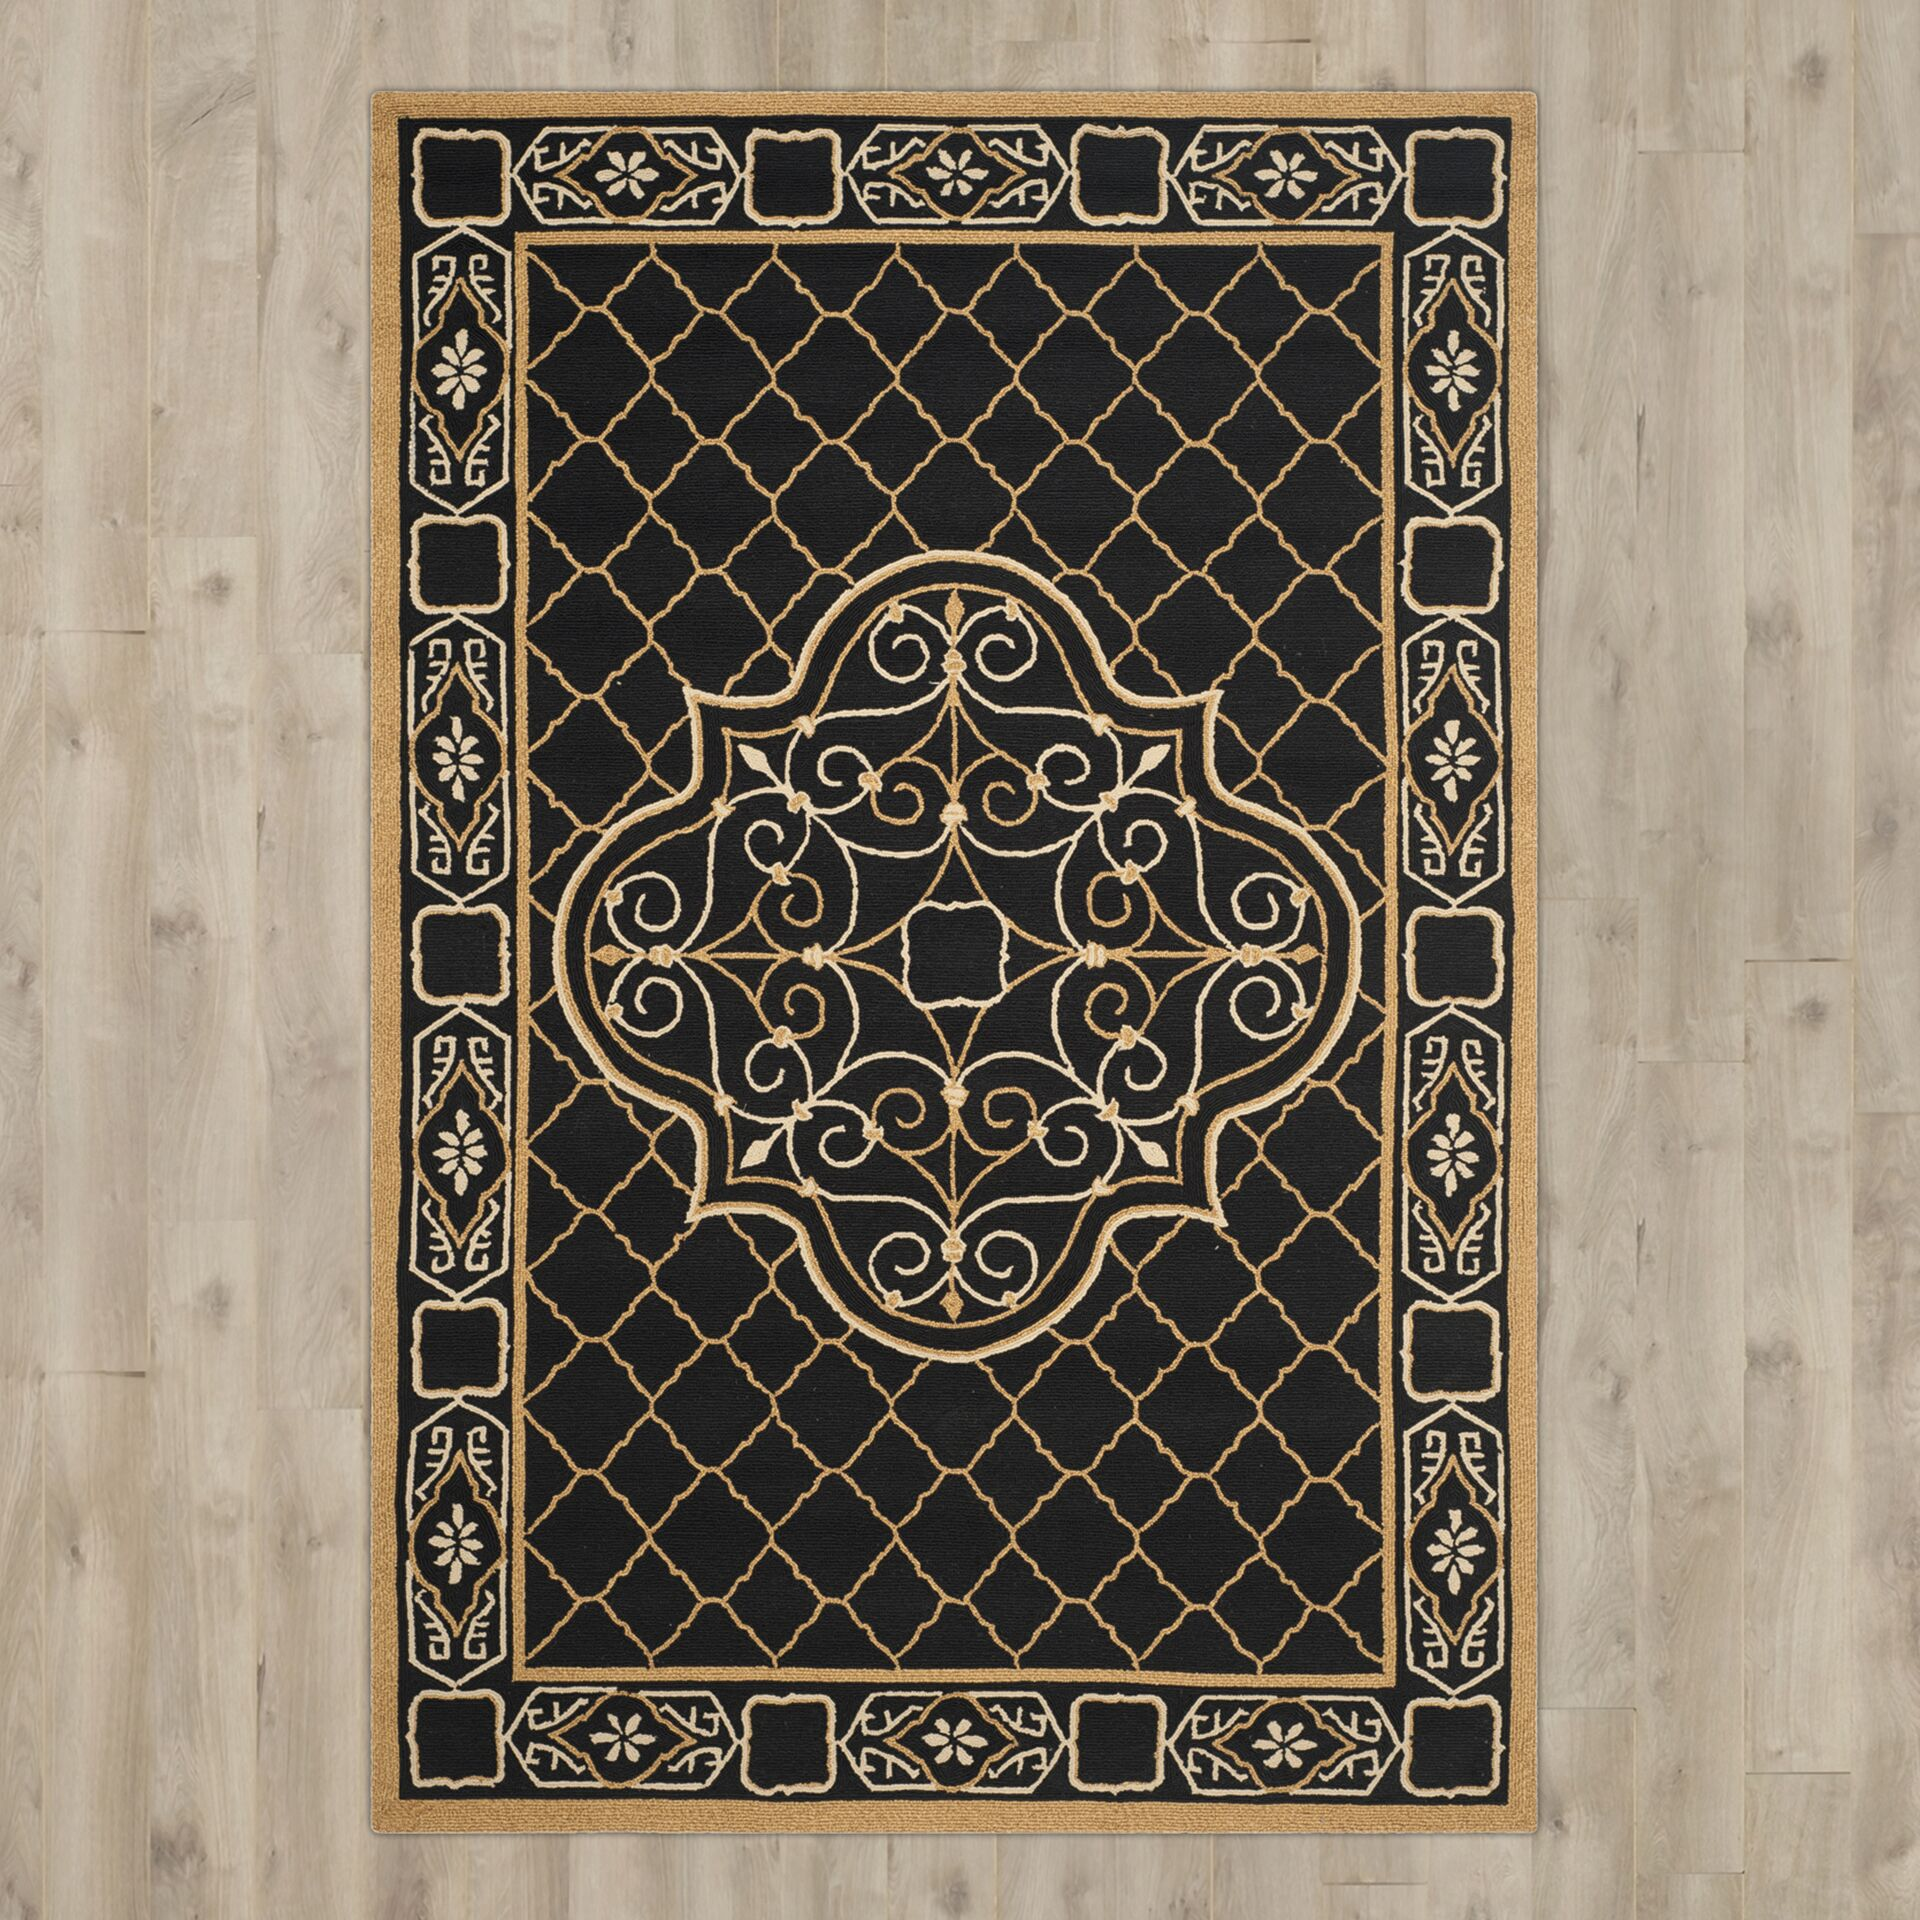 Gresham Palace Hand-Hooked Black/Gold Area Rug Rug Size: Rectangle 6' x 9'